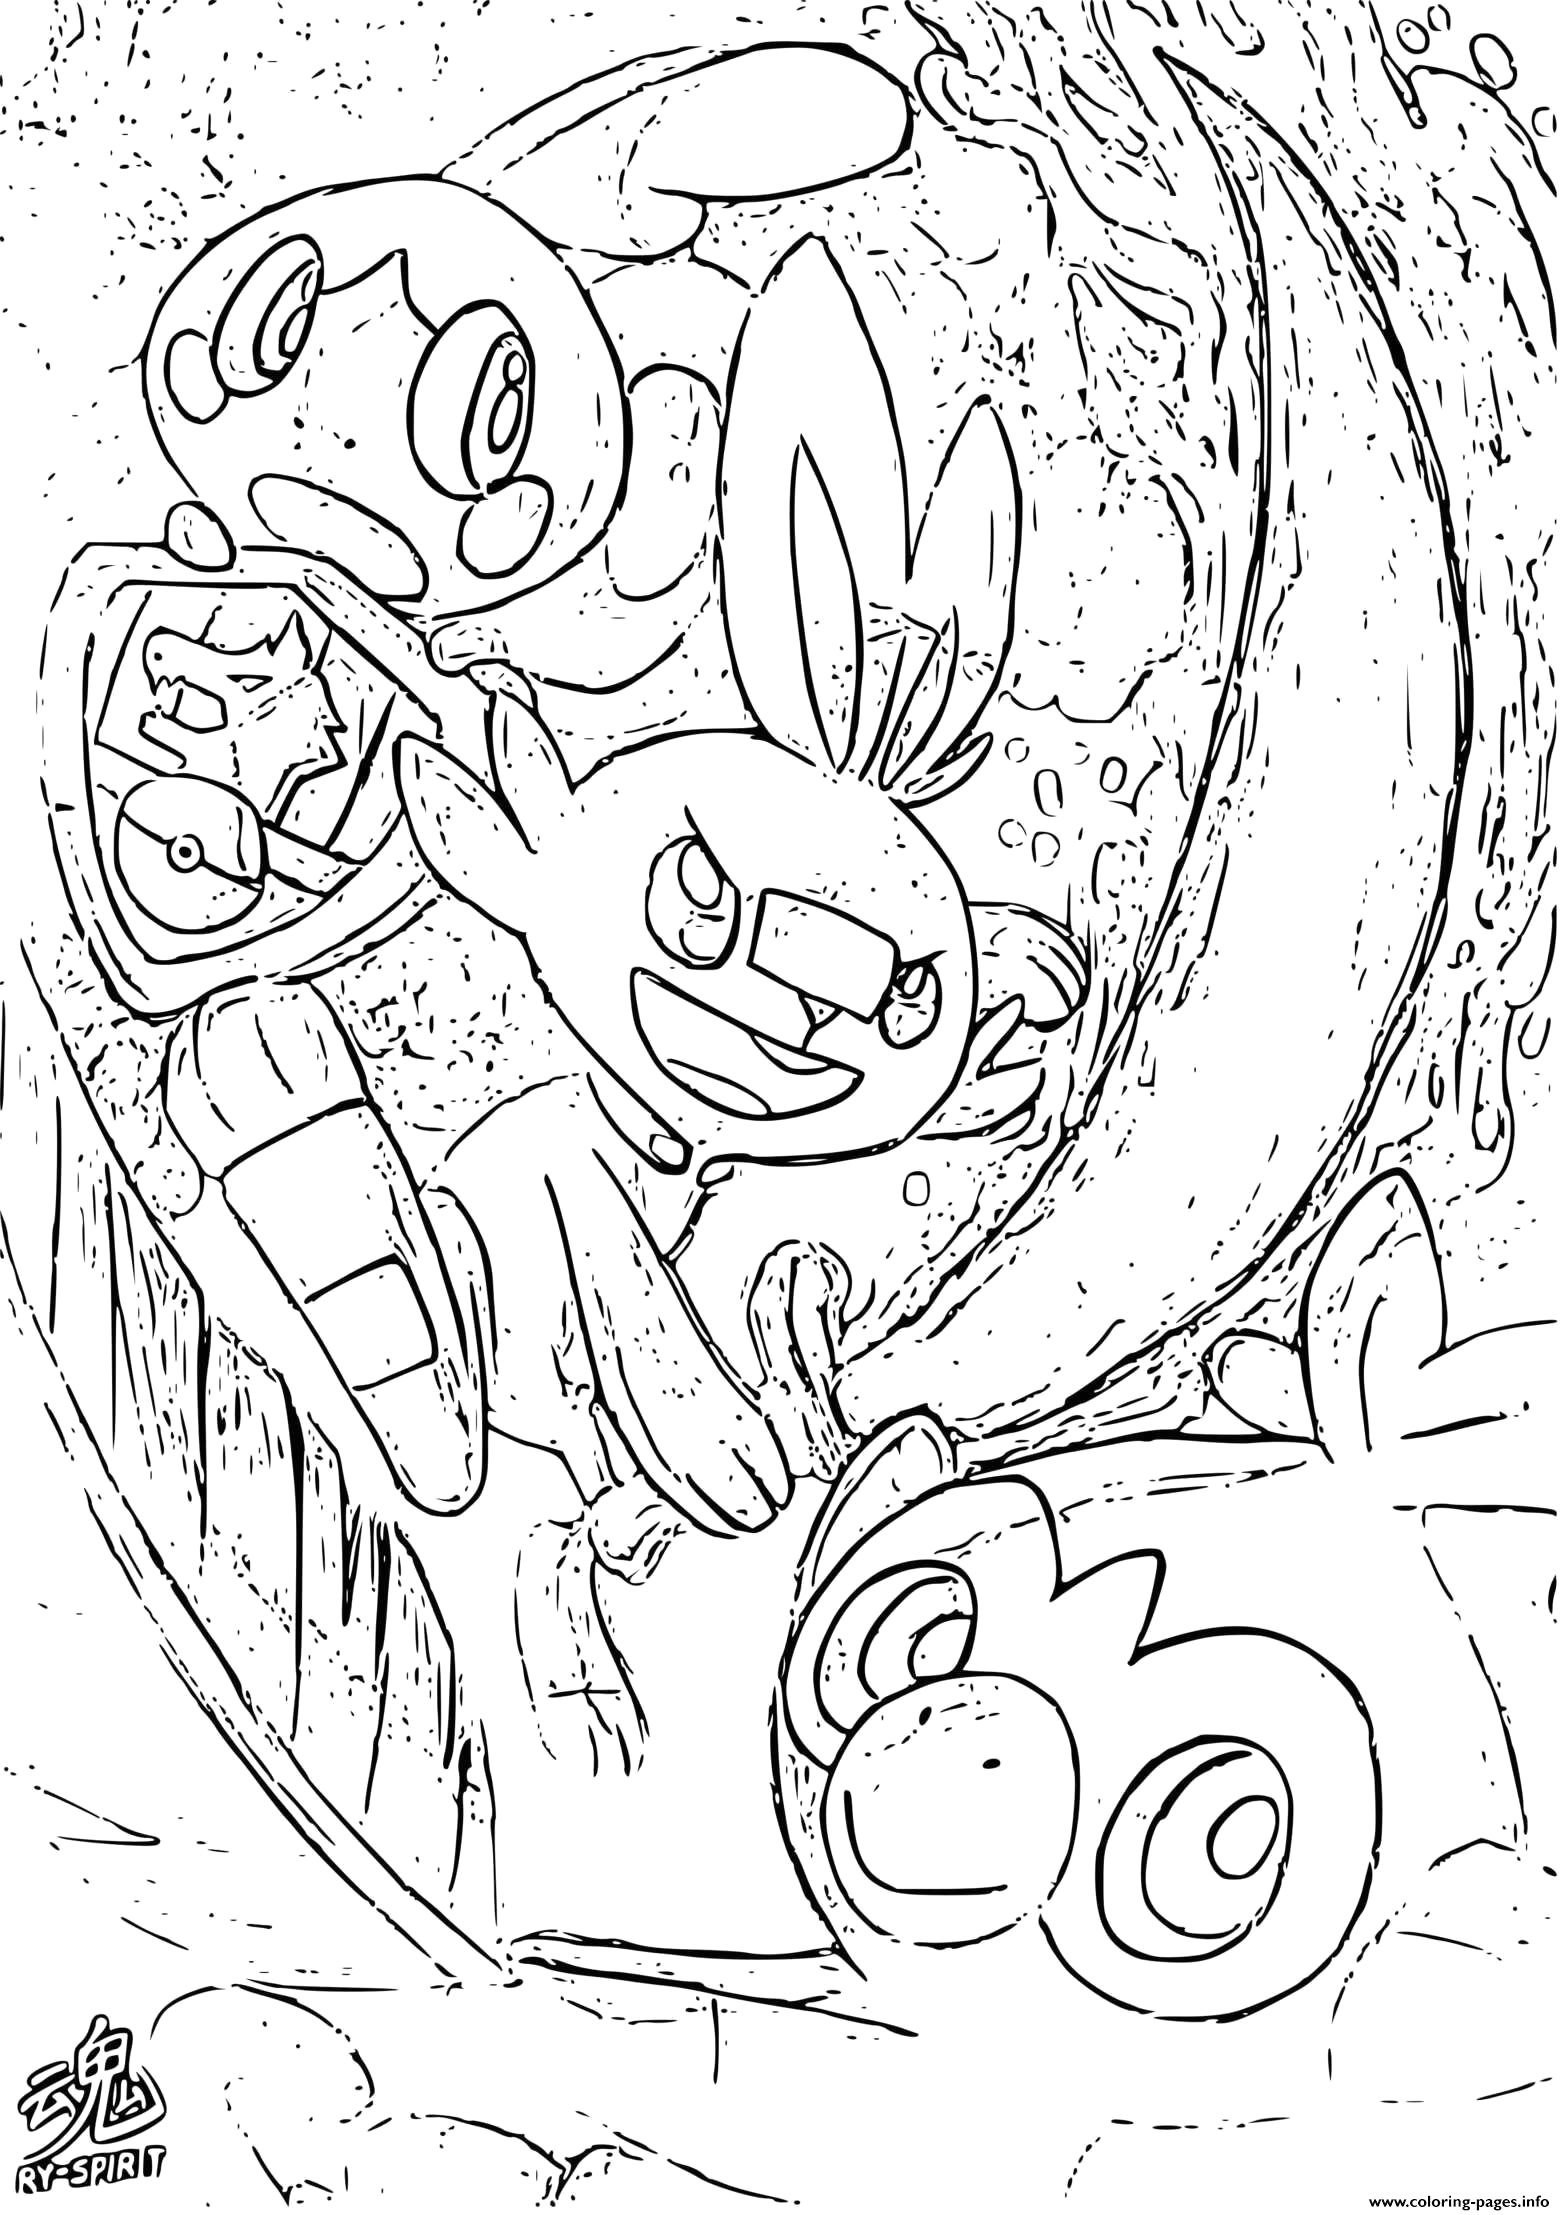 pokemon sword and shield by ryspirit printable coloring pages book